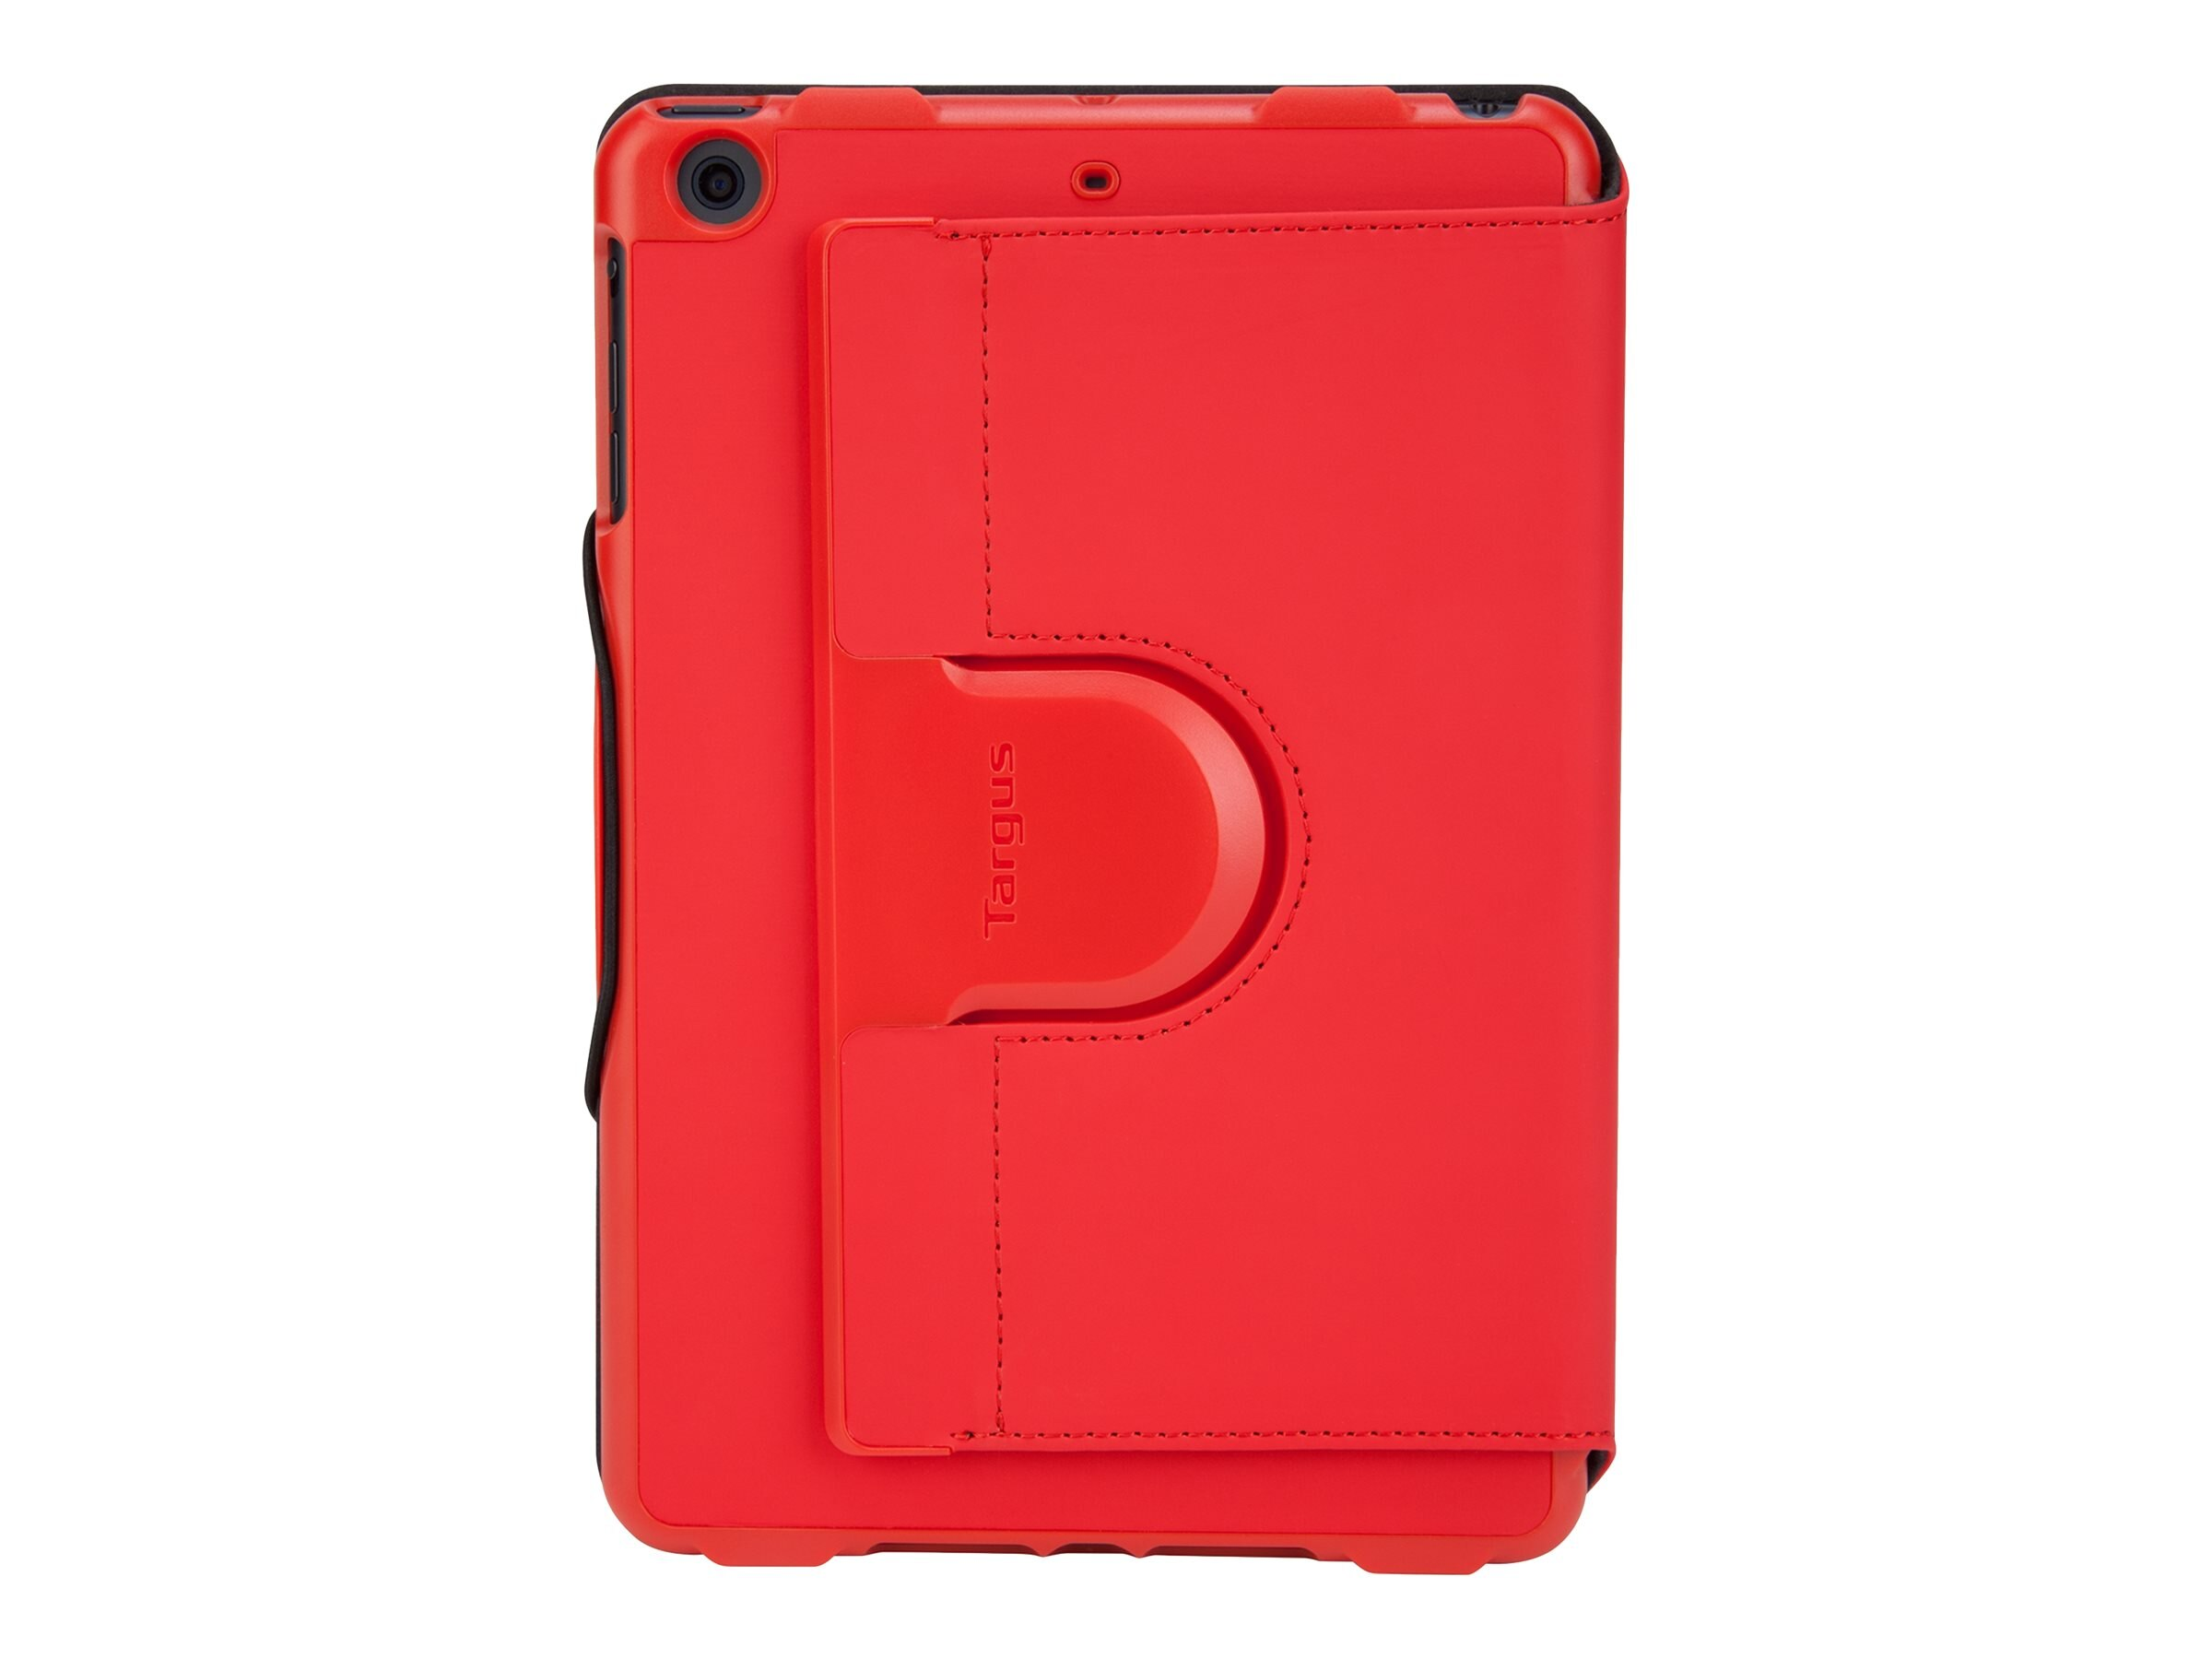 Targus Versavu Slim 2 for iPad mini with Retina Display, THZ36102US